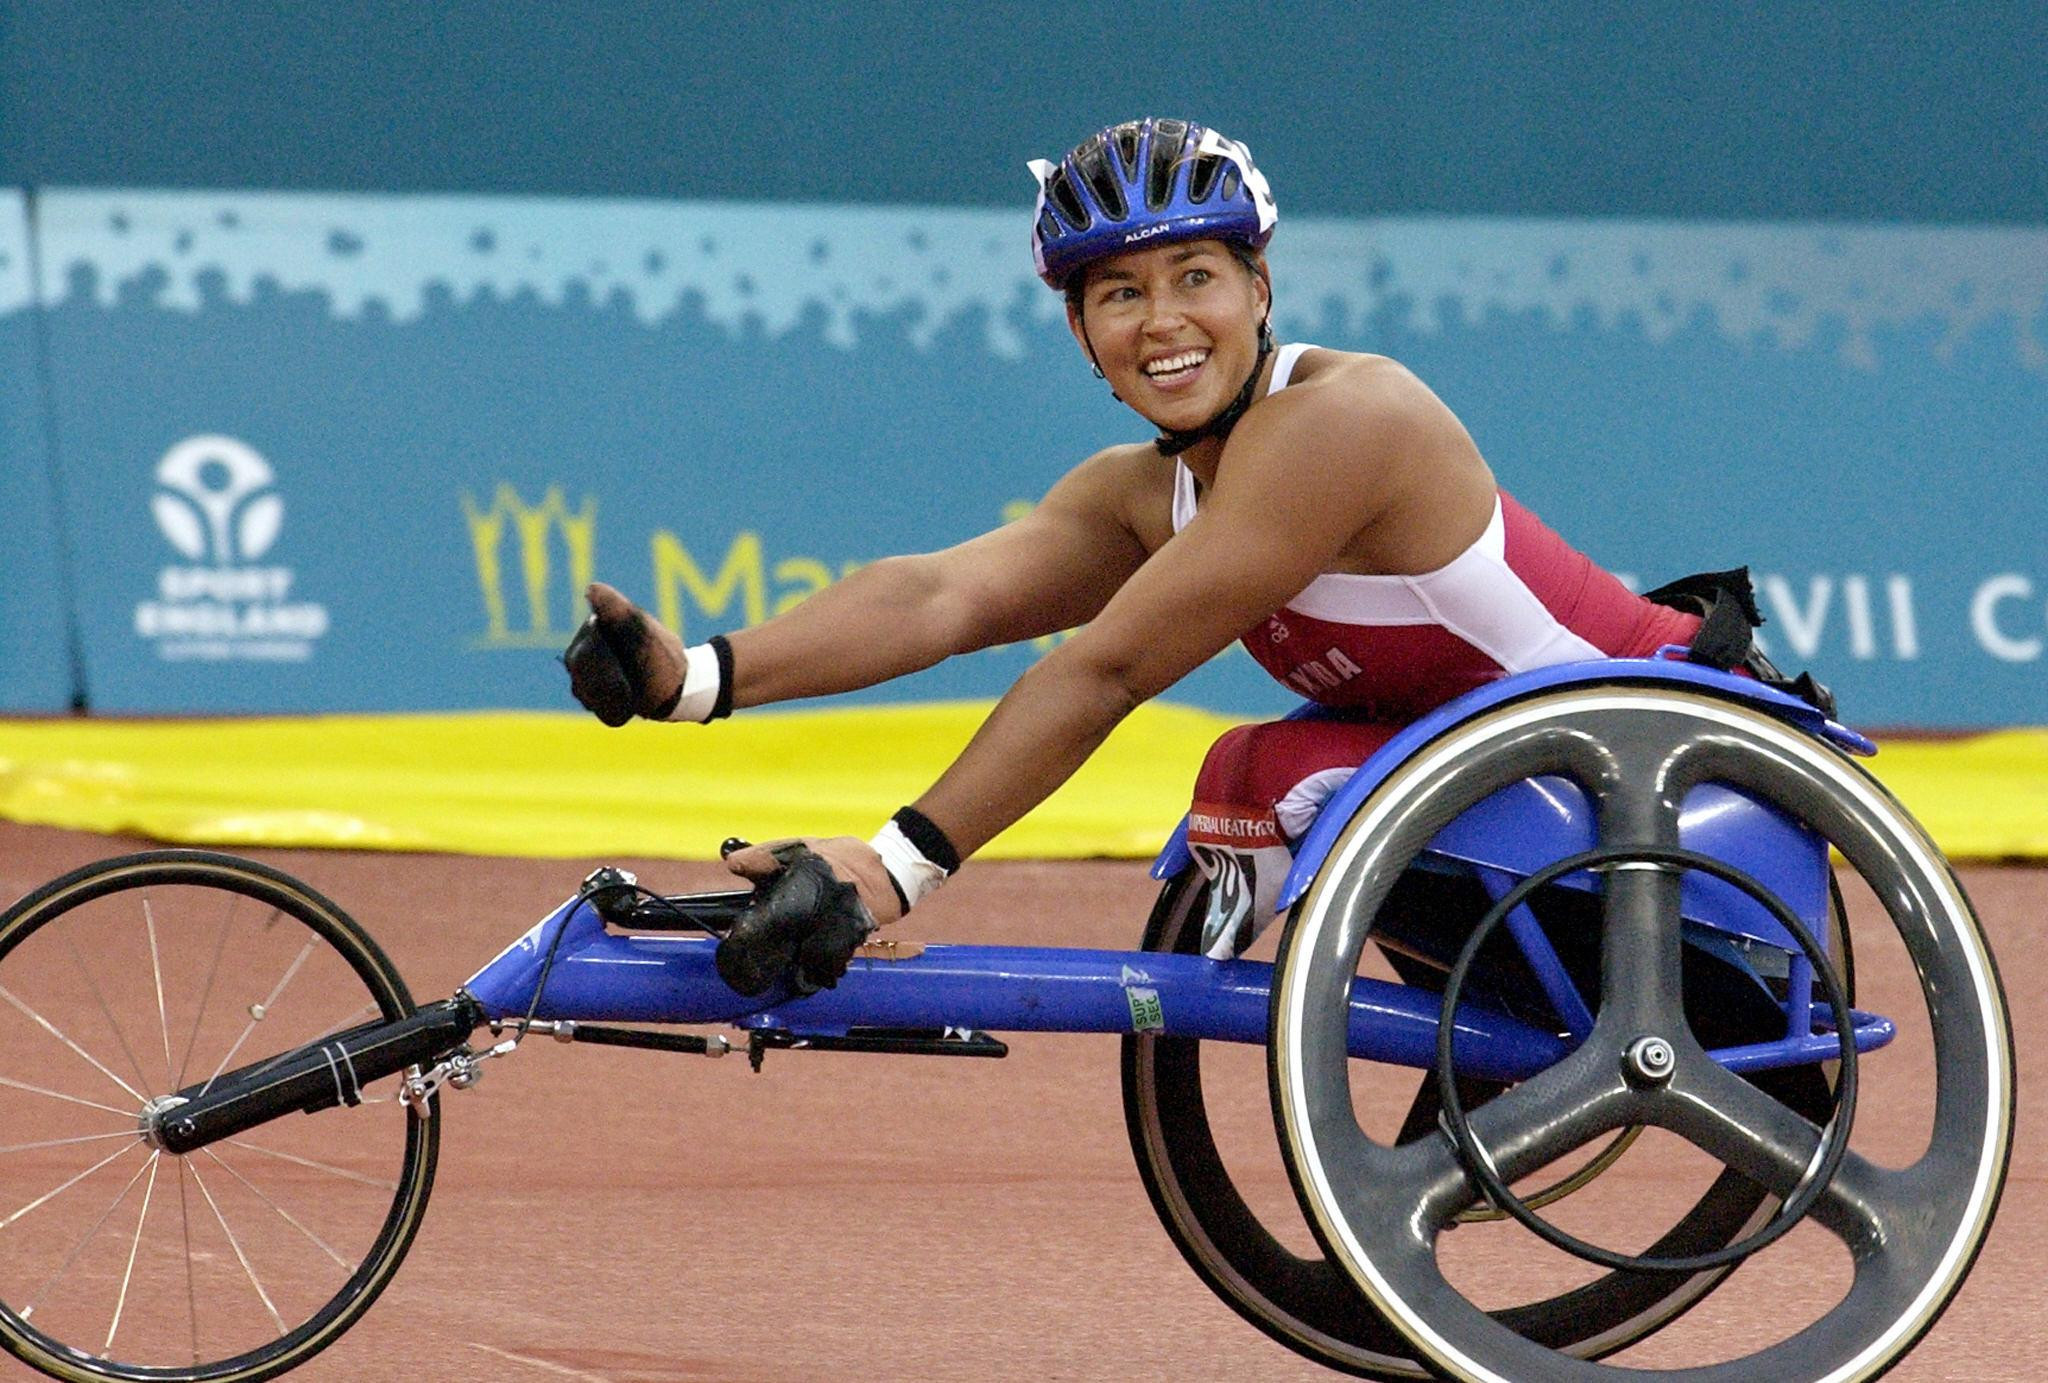 8. Trailblazer Chantal Petitclerc wins first Commonwealth Games gold medal in Para-sport